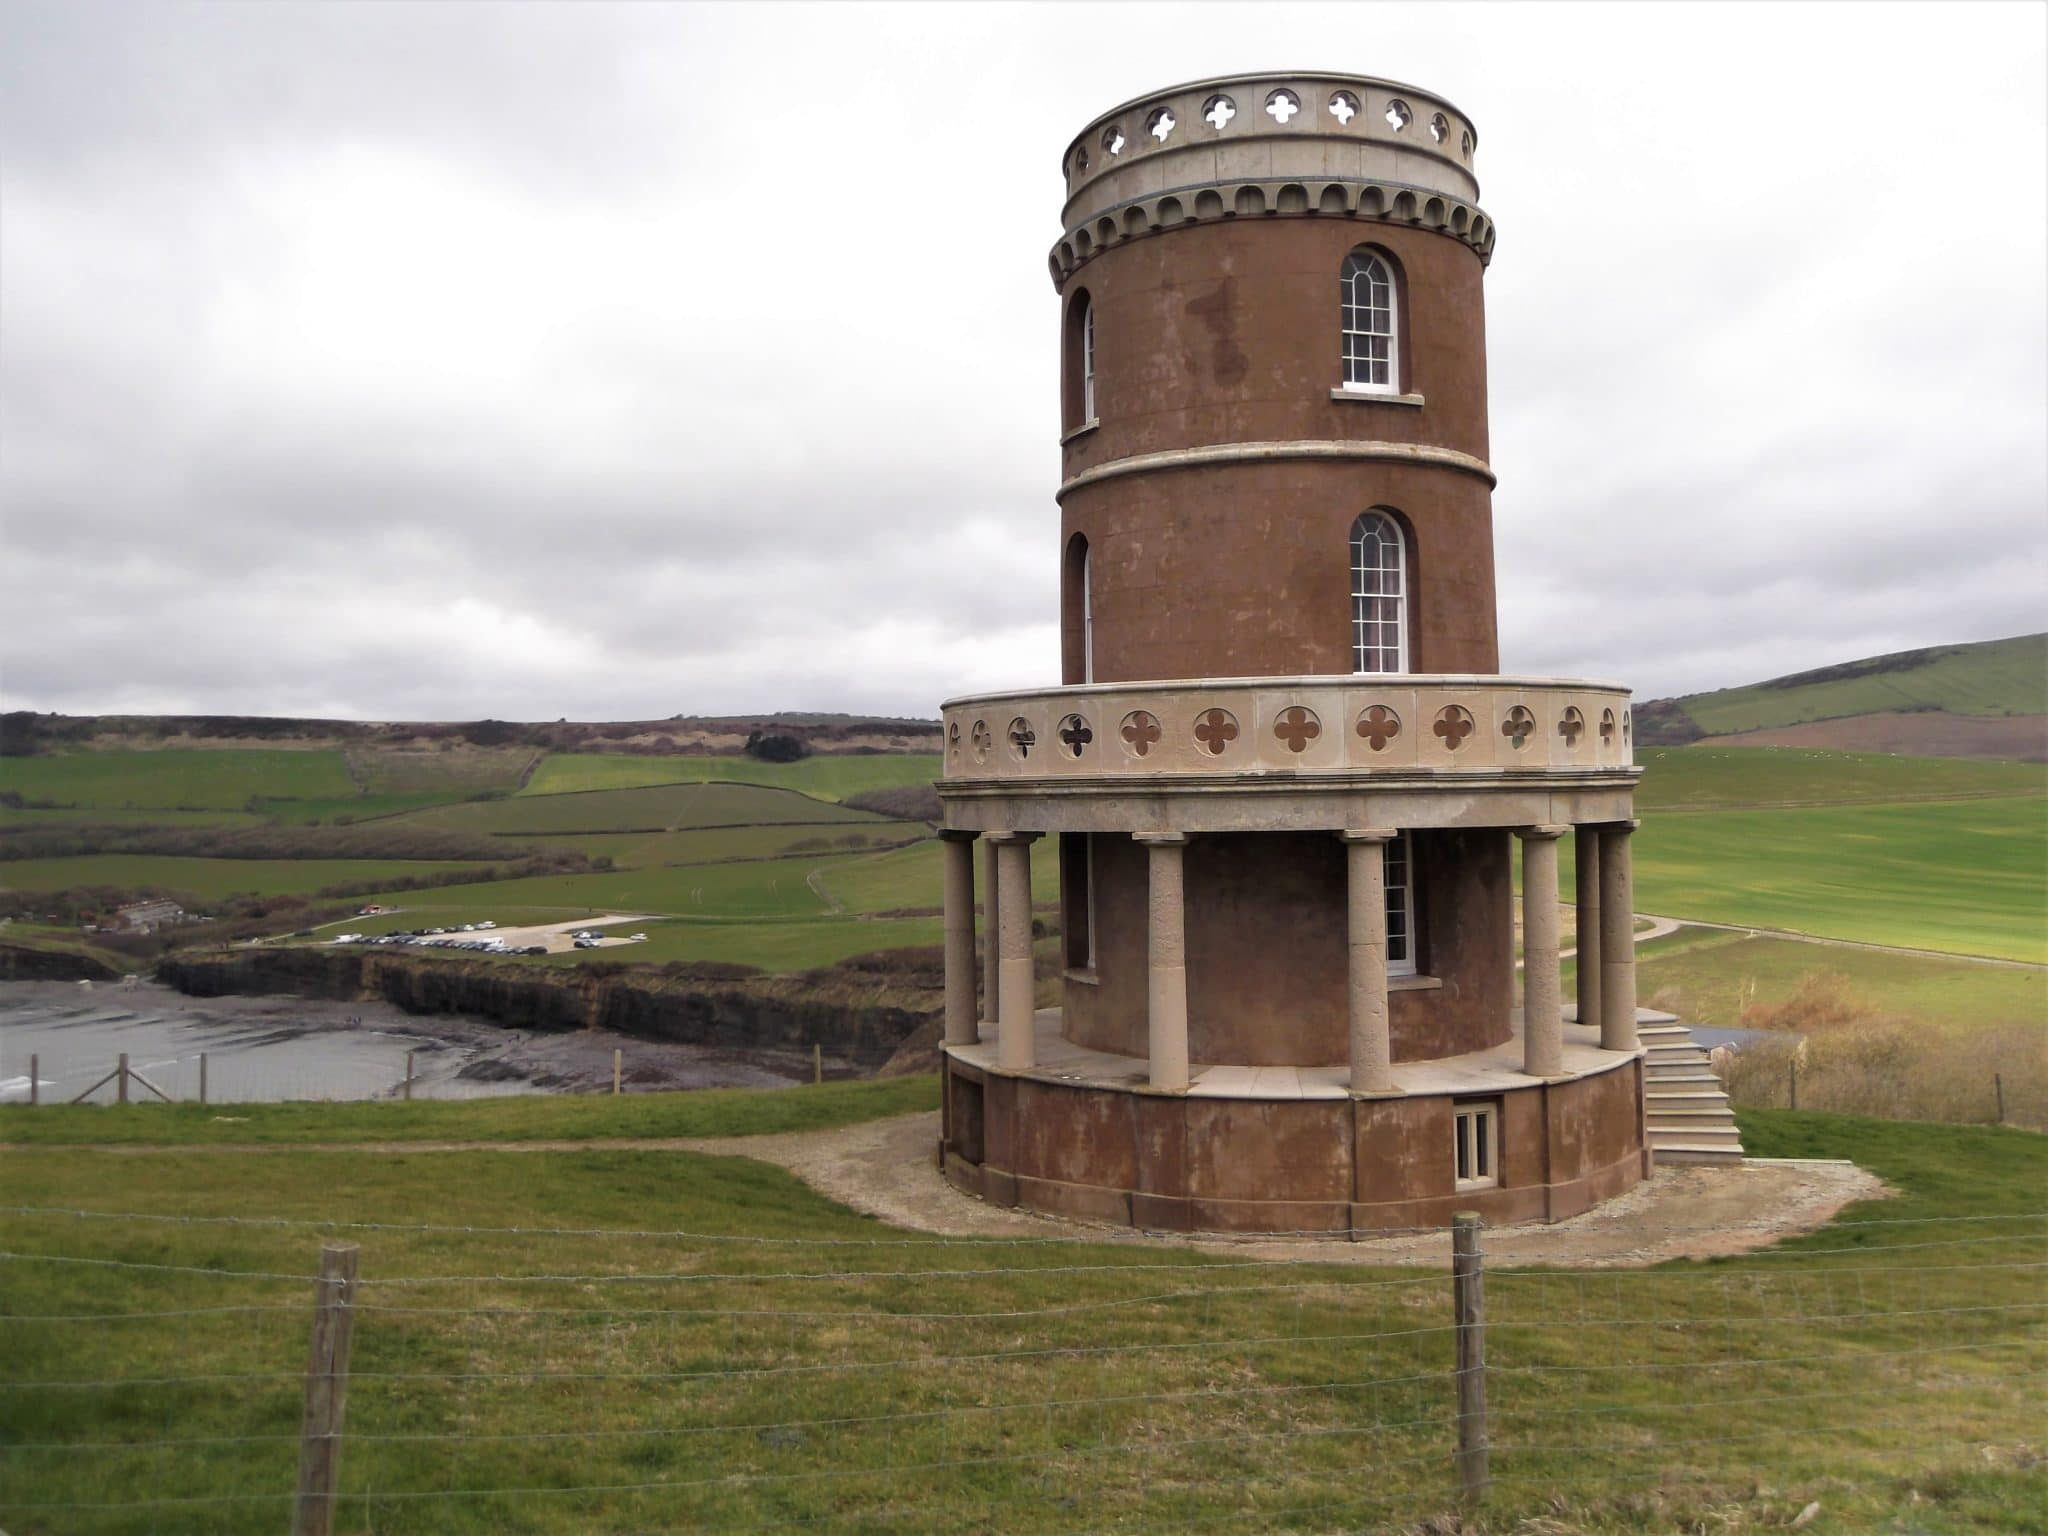 11 - Clavell Tower at the top